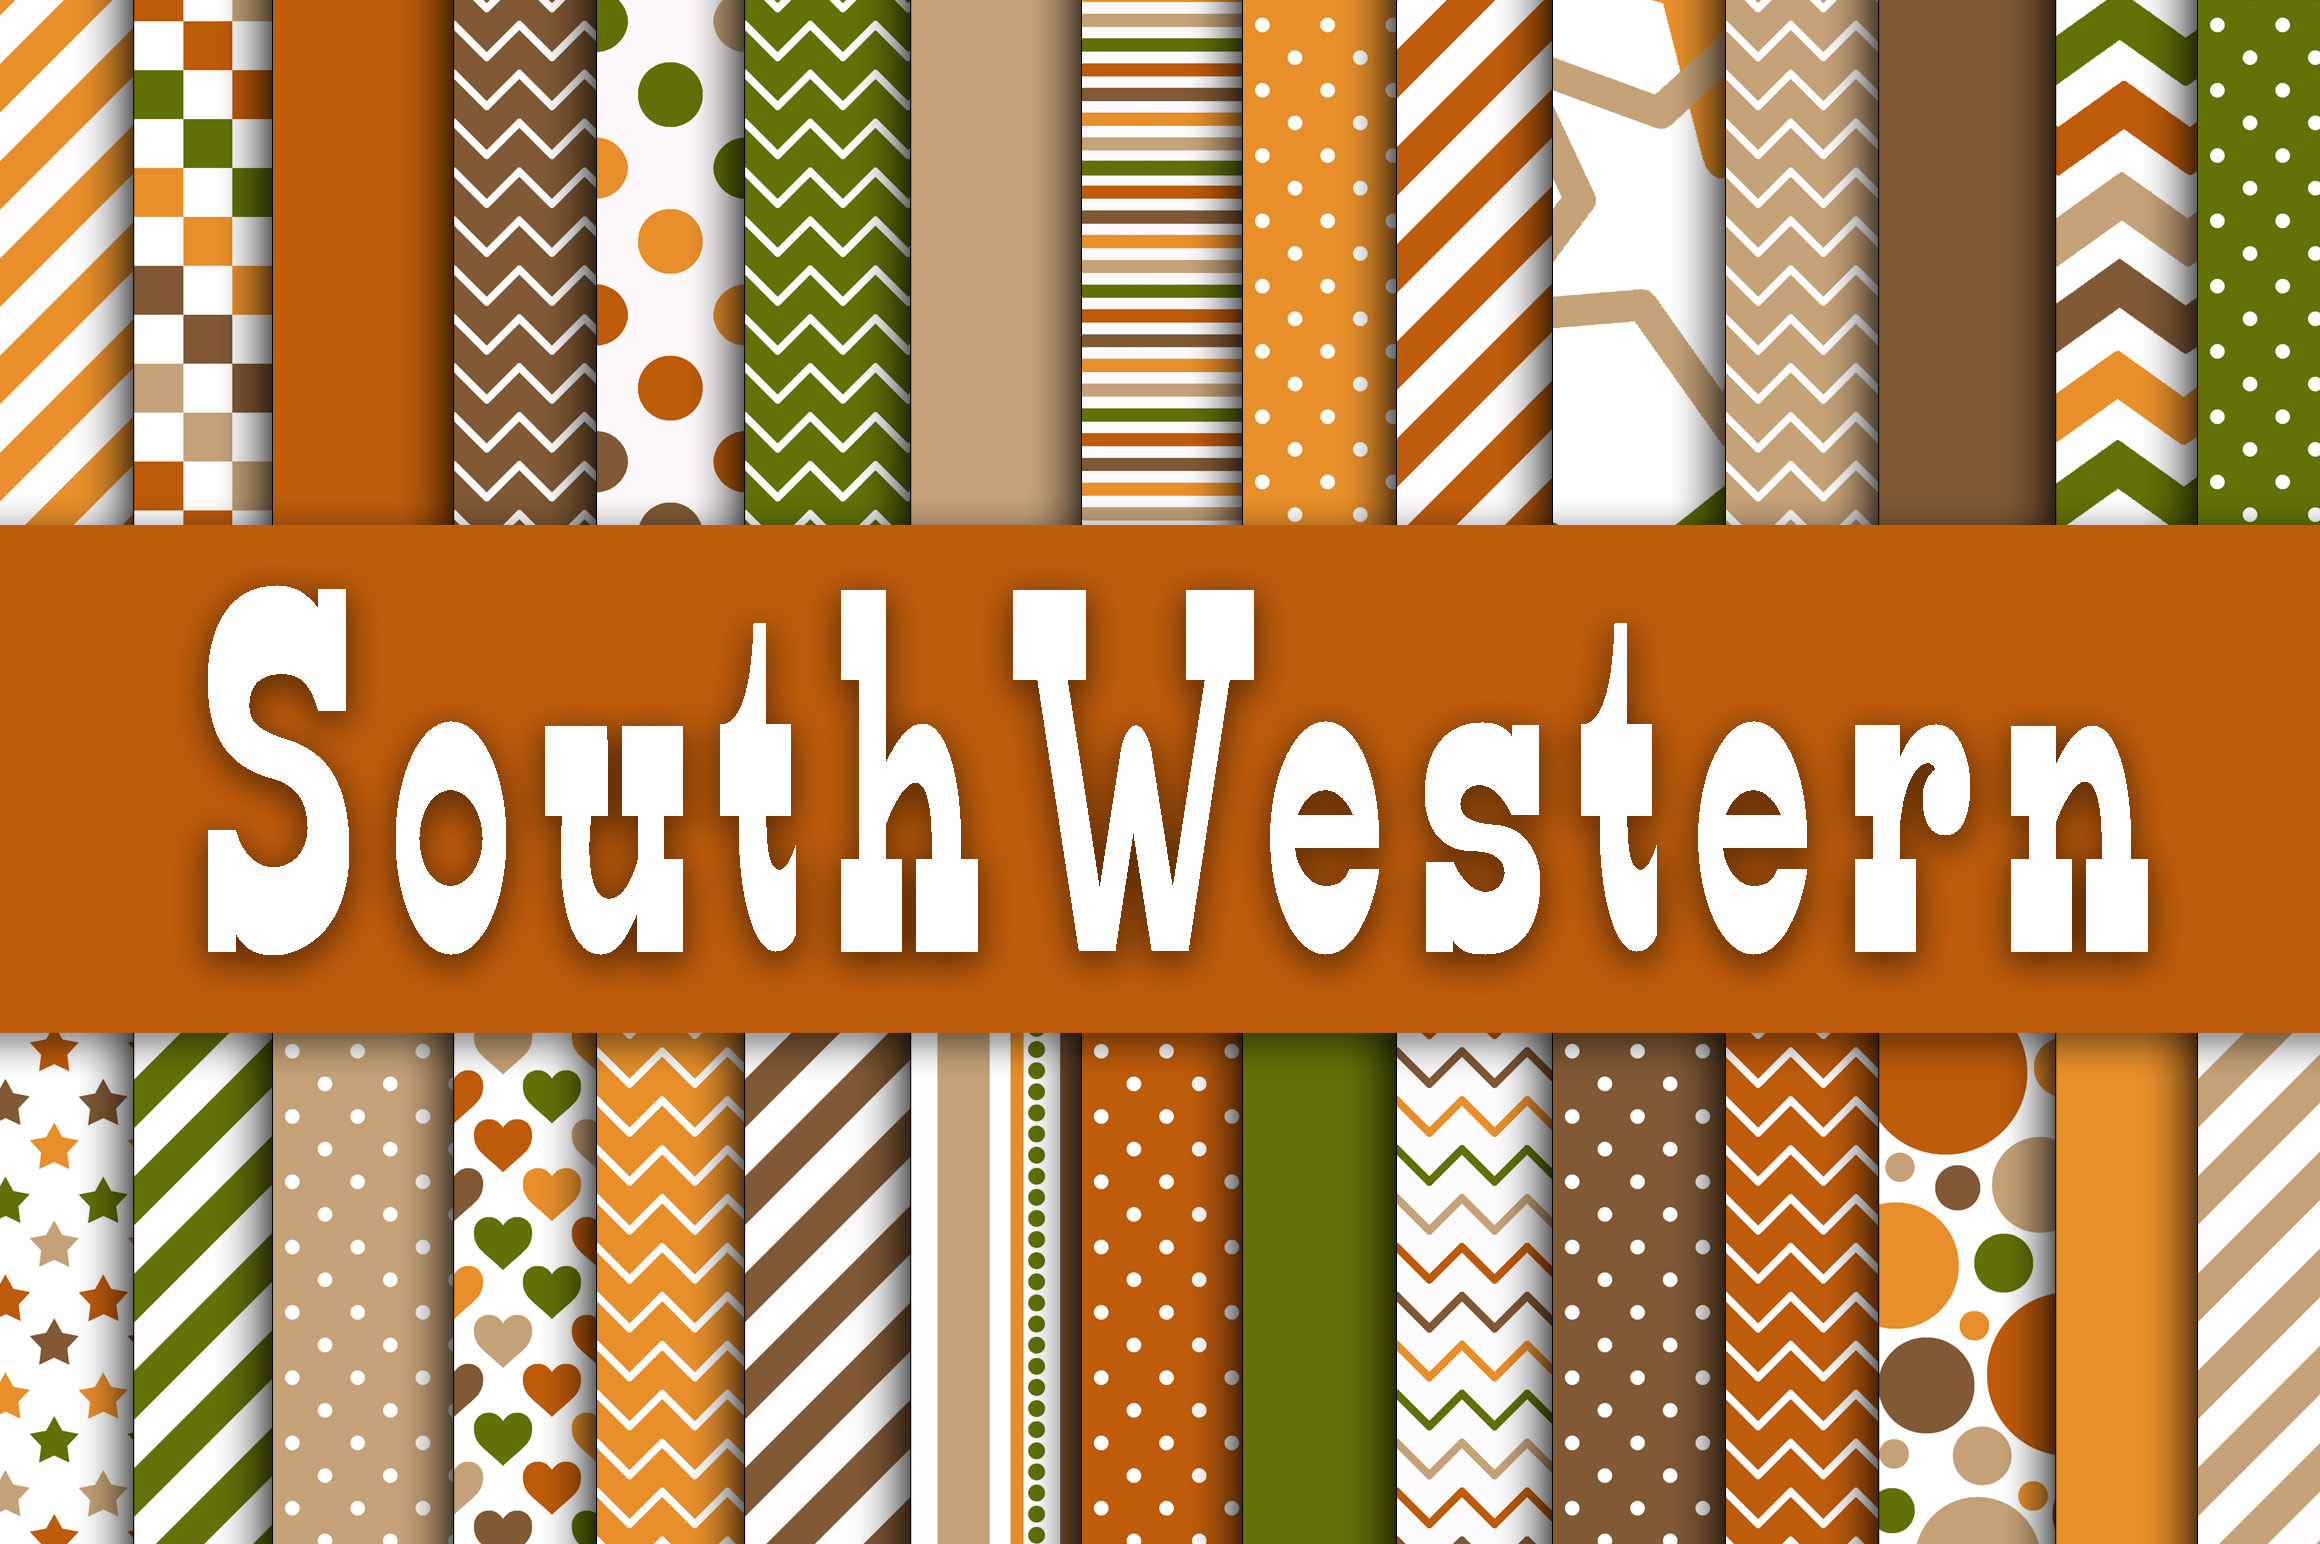 SouthWestern Digital Paper Graphic By oldmarketdesigns Image 1